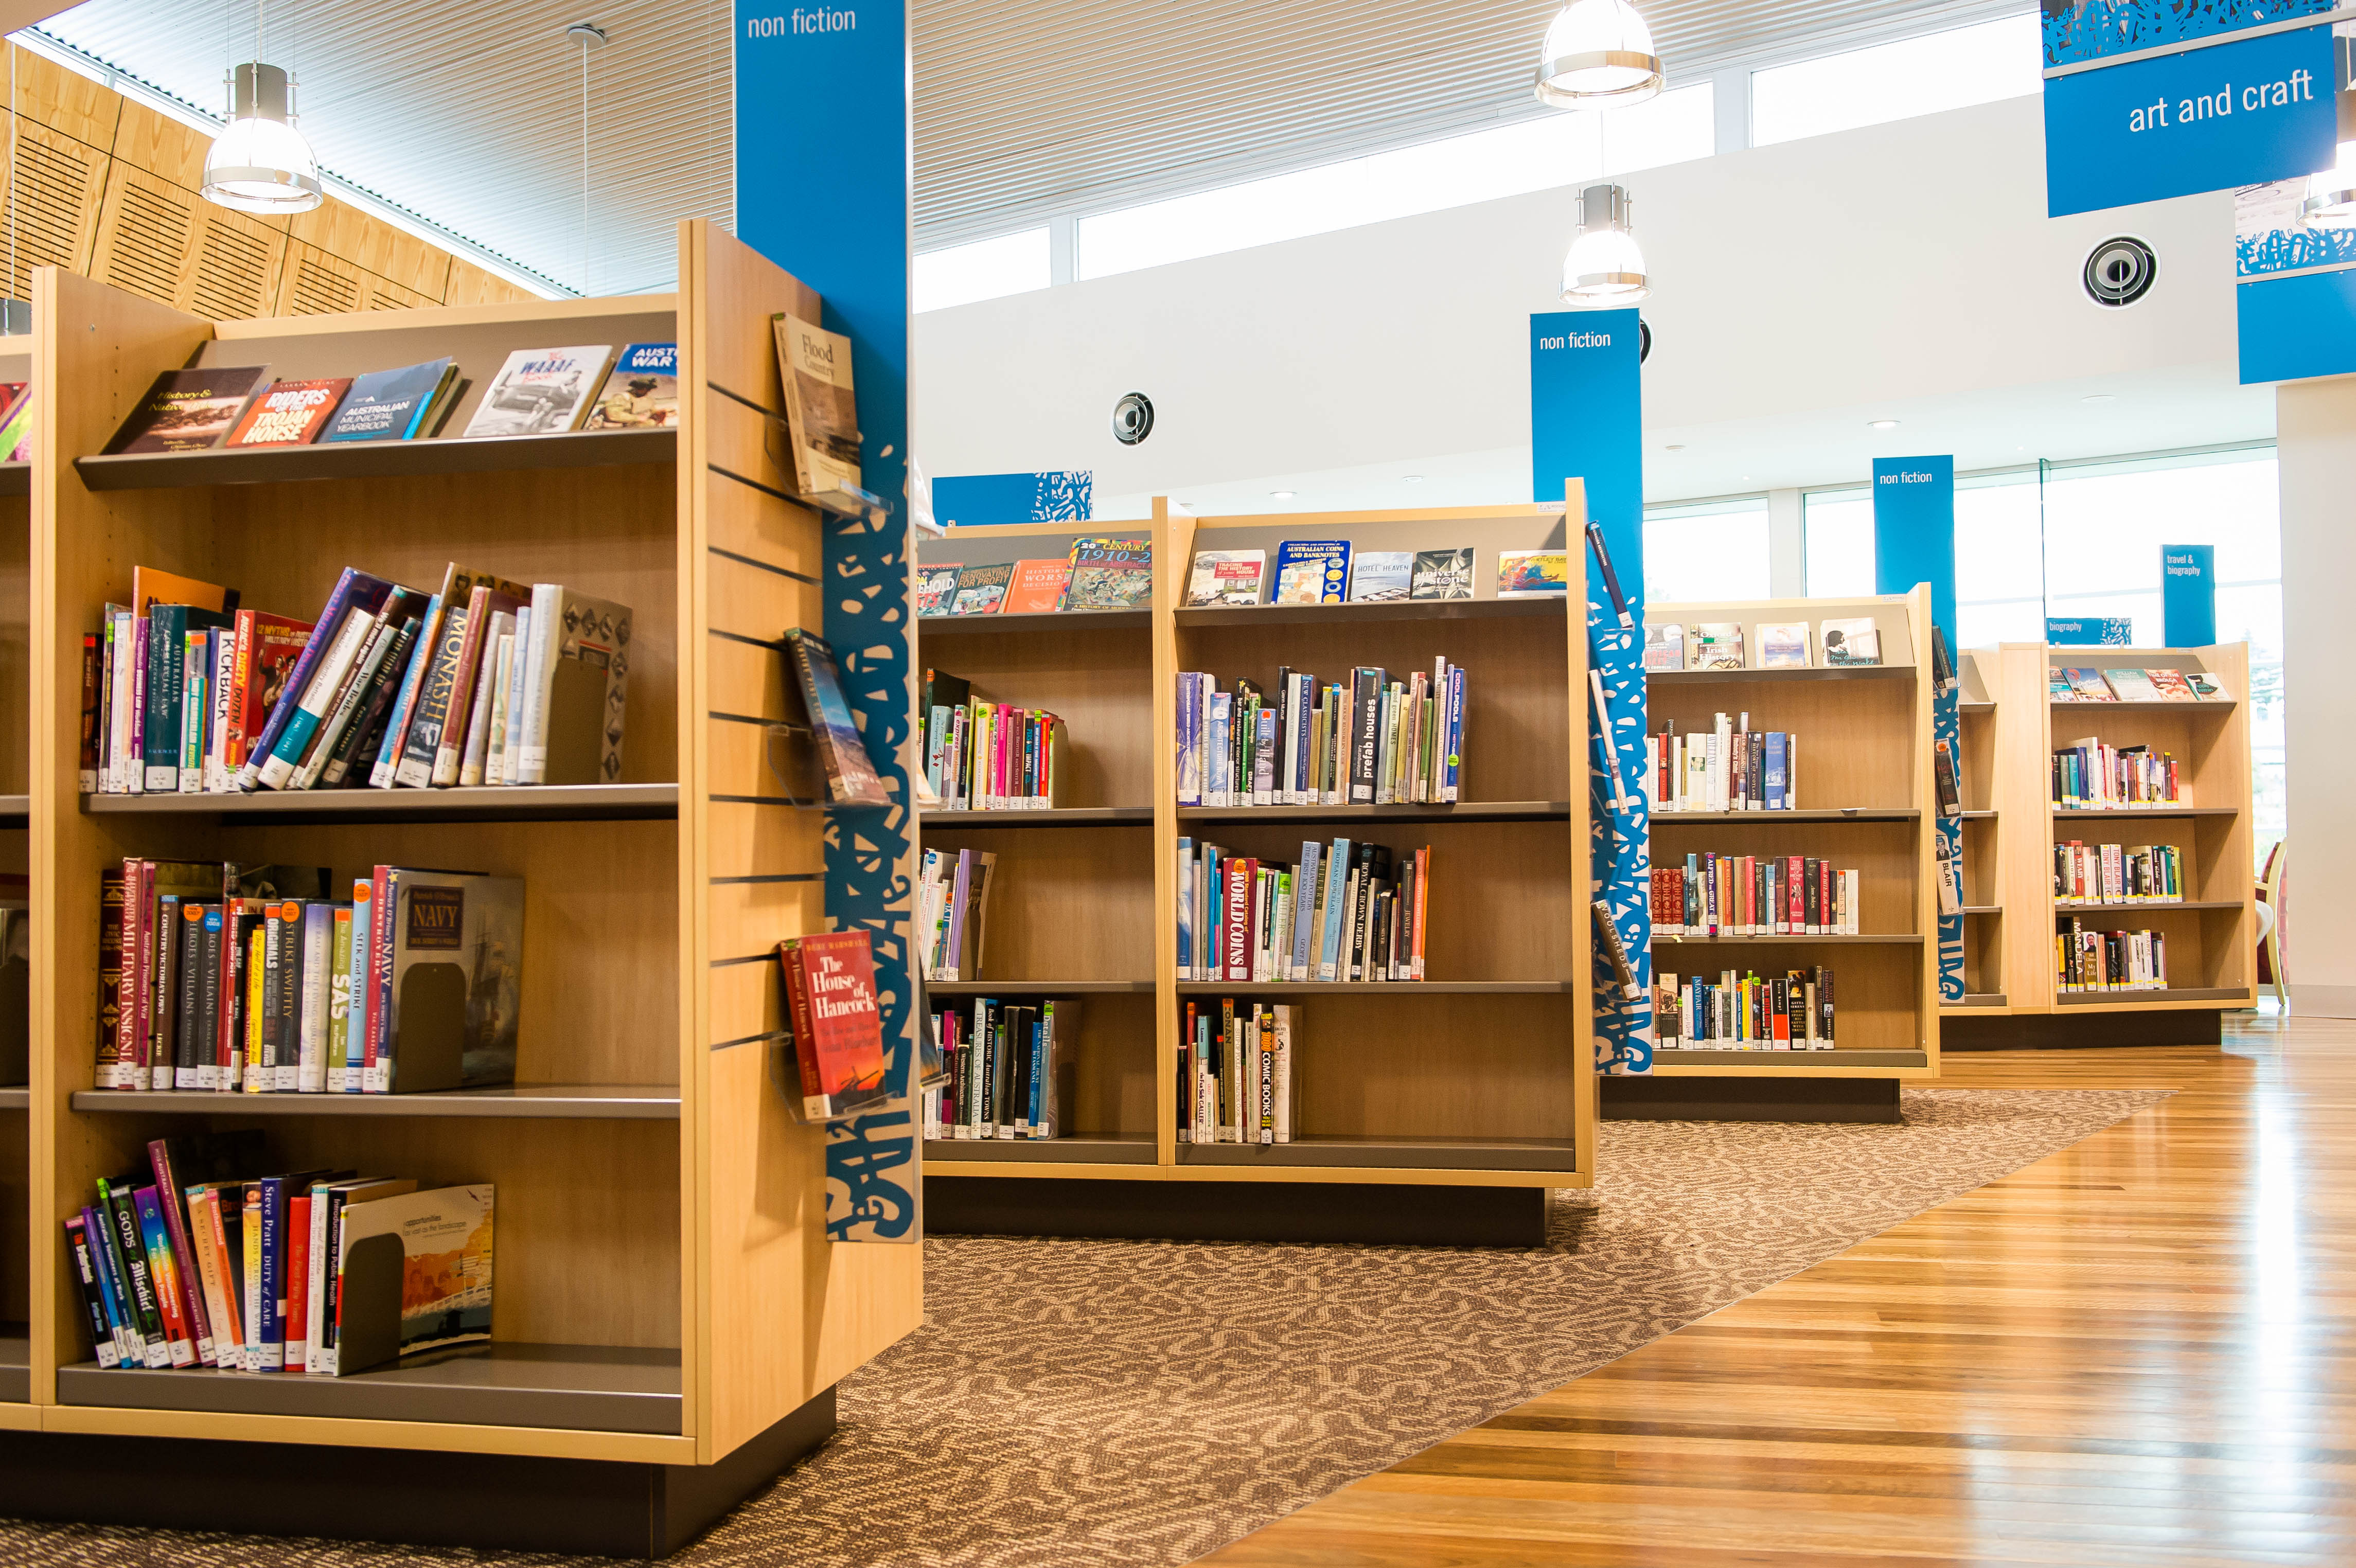 Mount gambier library